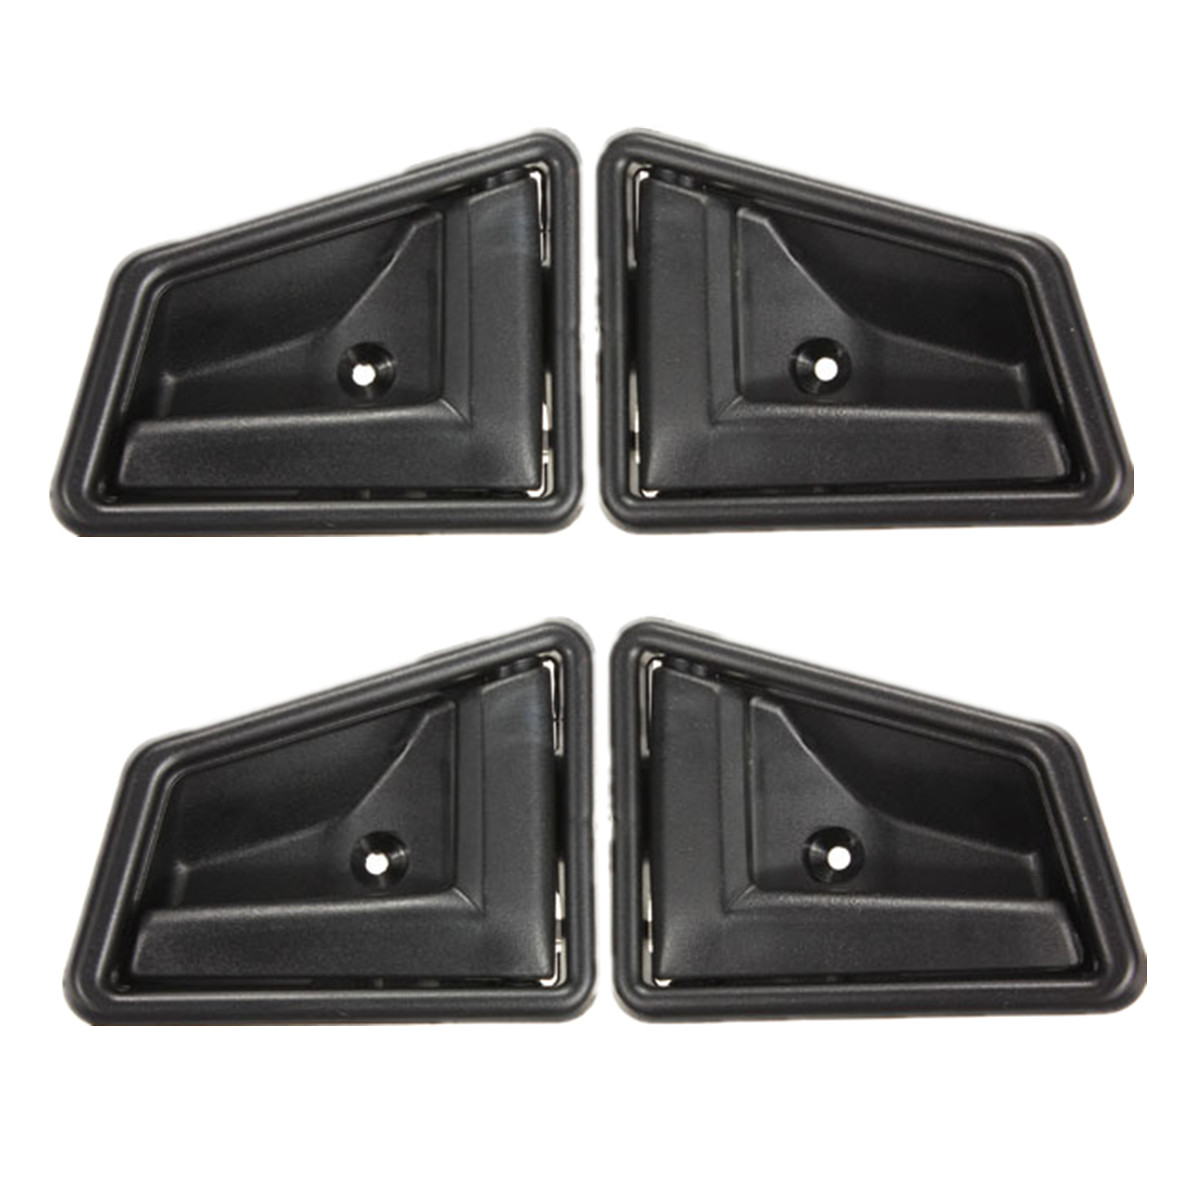 4 Pcs Inner Inside Interior Door Handles For Suzuki